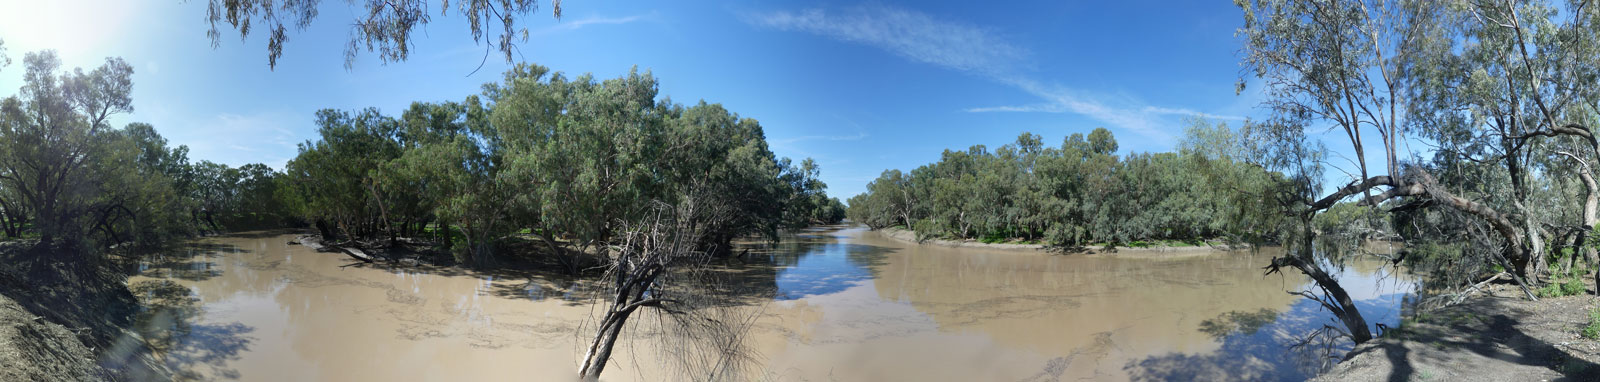 Convergence of the Culgoa and Barwon Rivers to form the Darling River